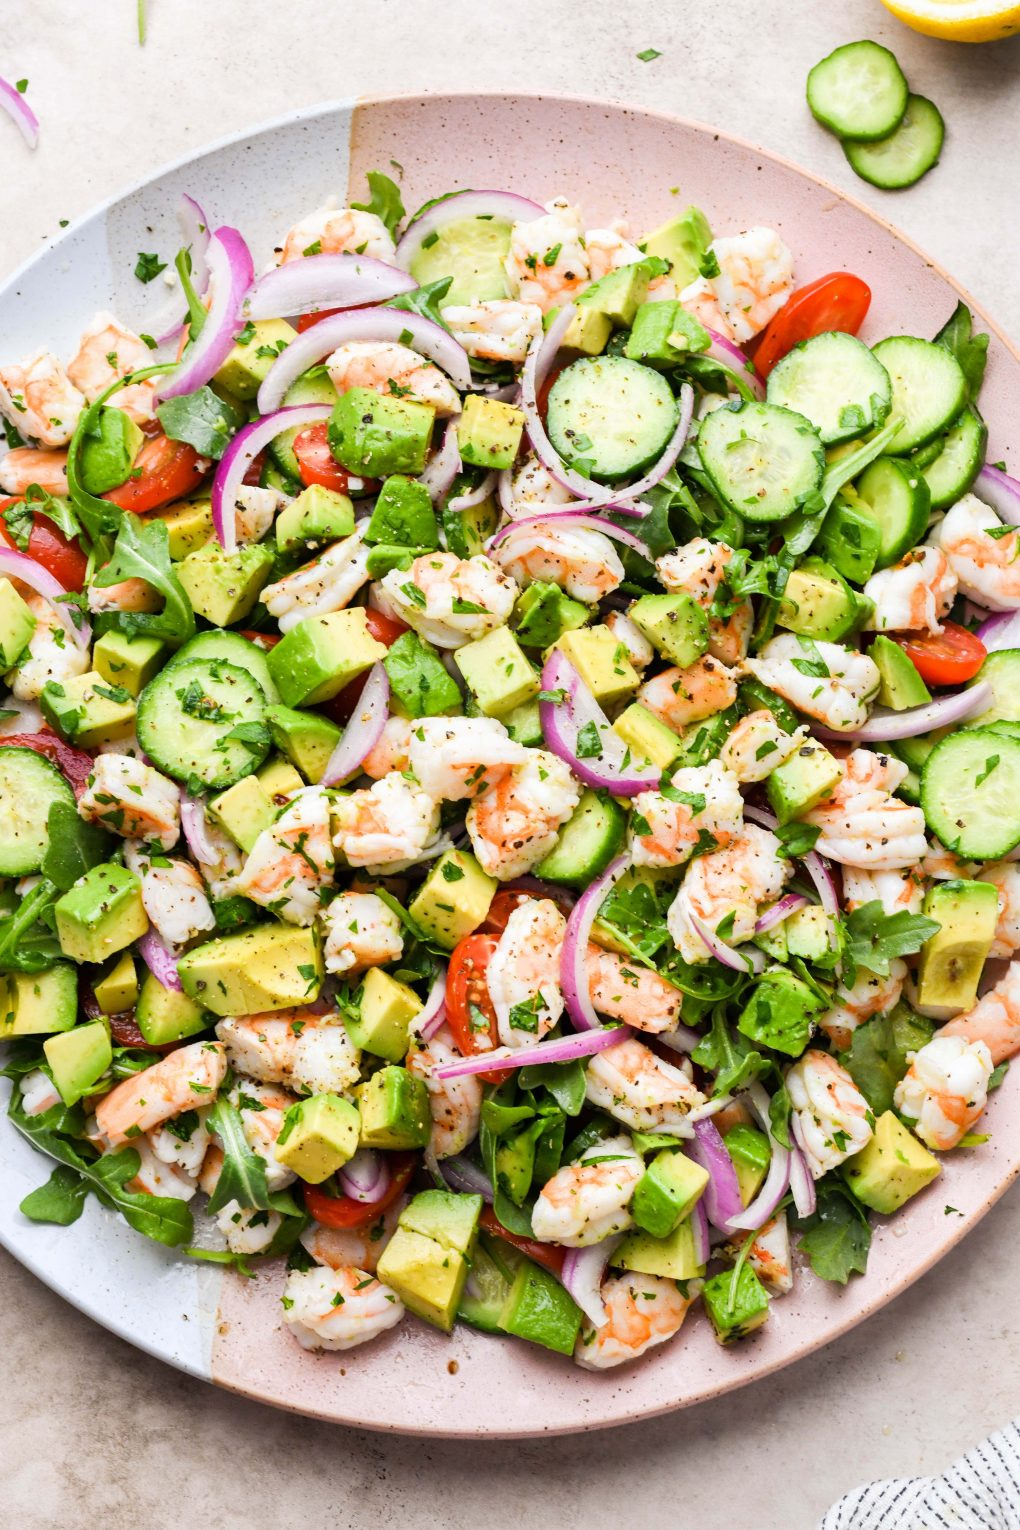 Overhead shot of a fresh and colorful shrimp and avocado salad on a pale pink and beige platter. Salad is made of arugula, sliced cucumber, cherry tomatoes, thinly sliced red onion, avocado, chopped shrimp, and fresh parsley.